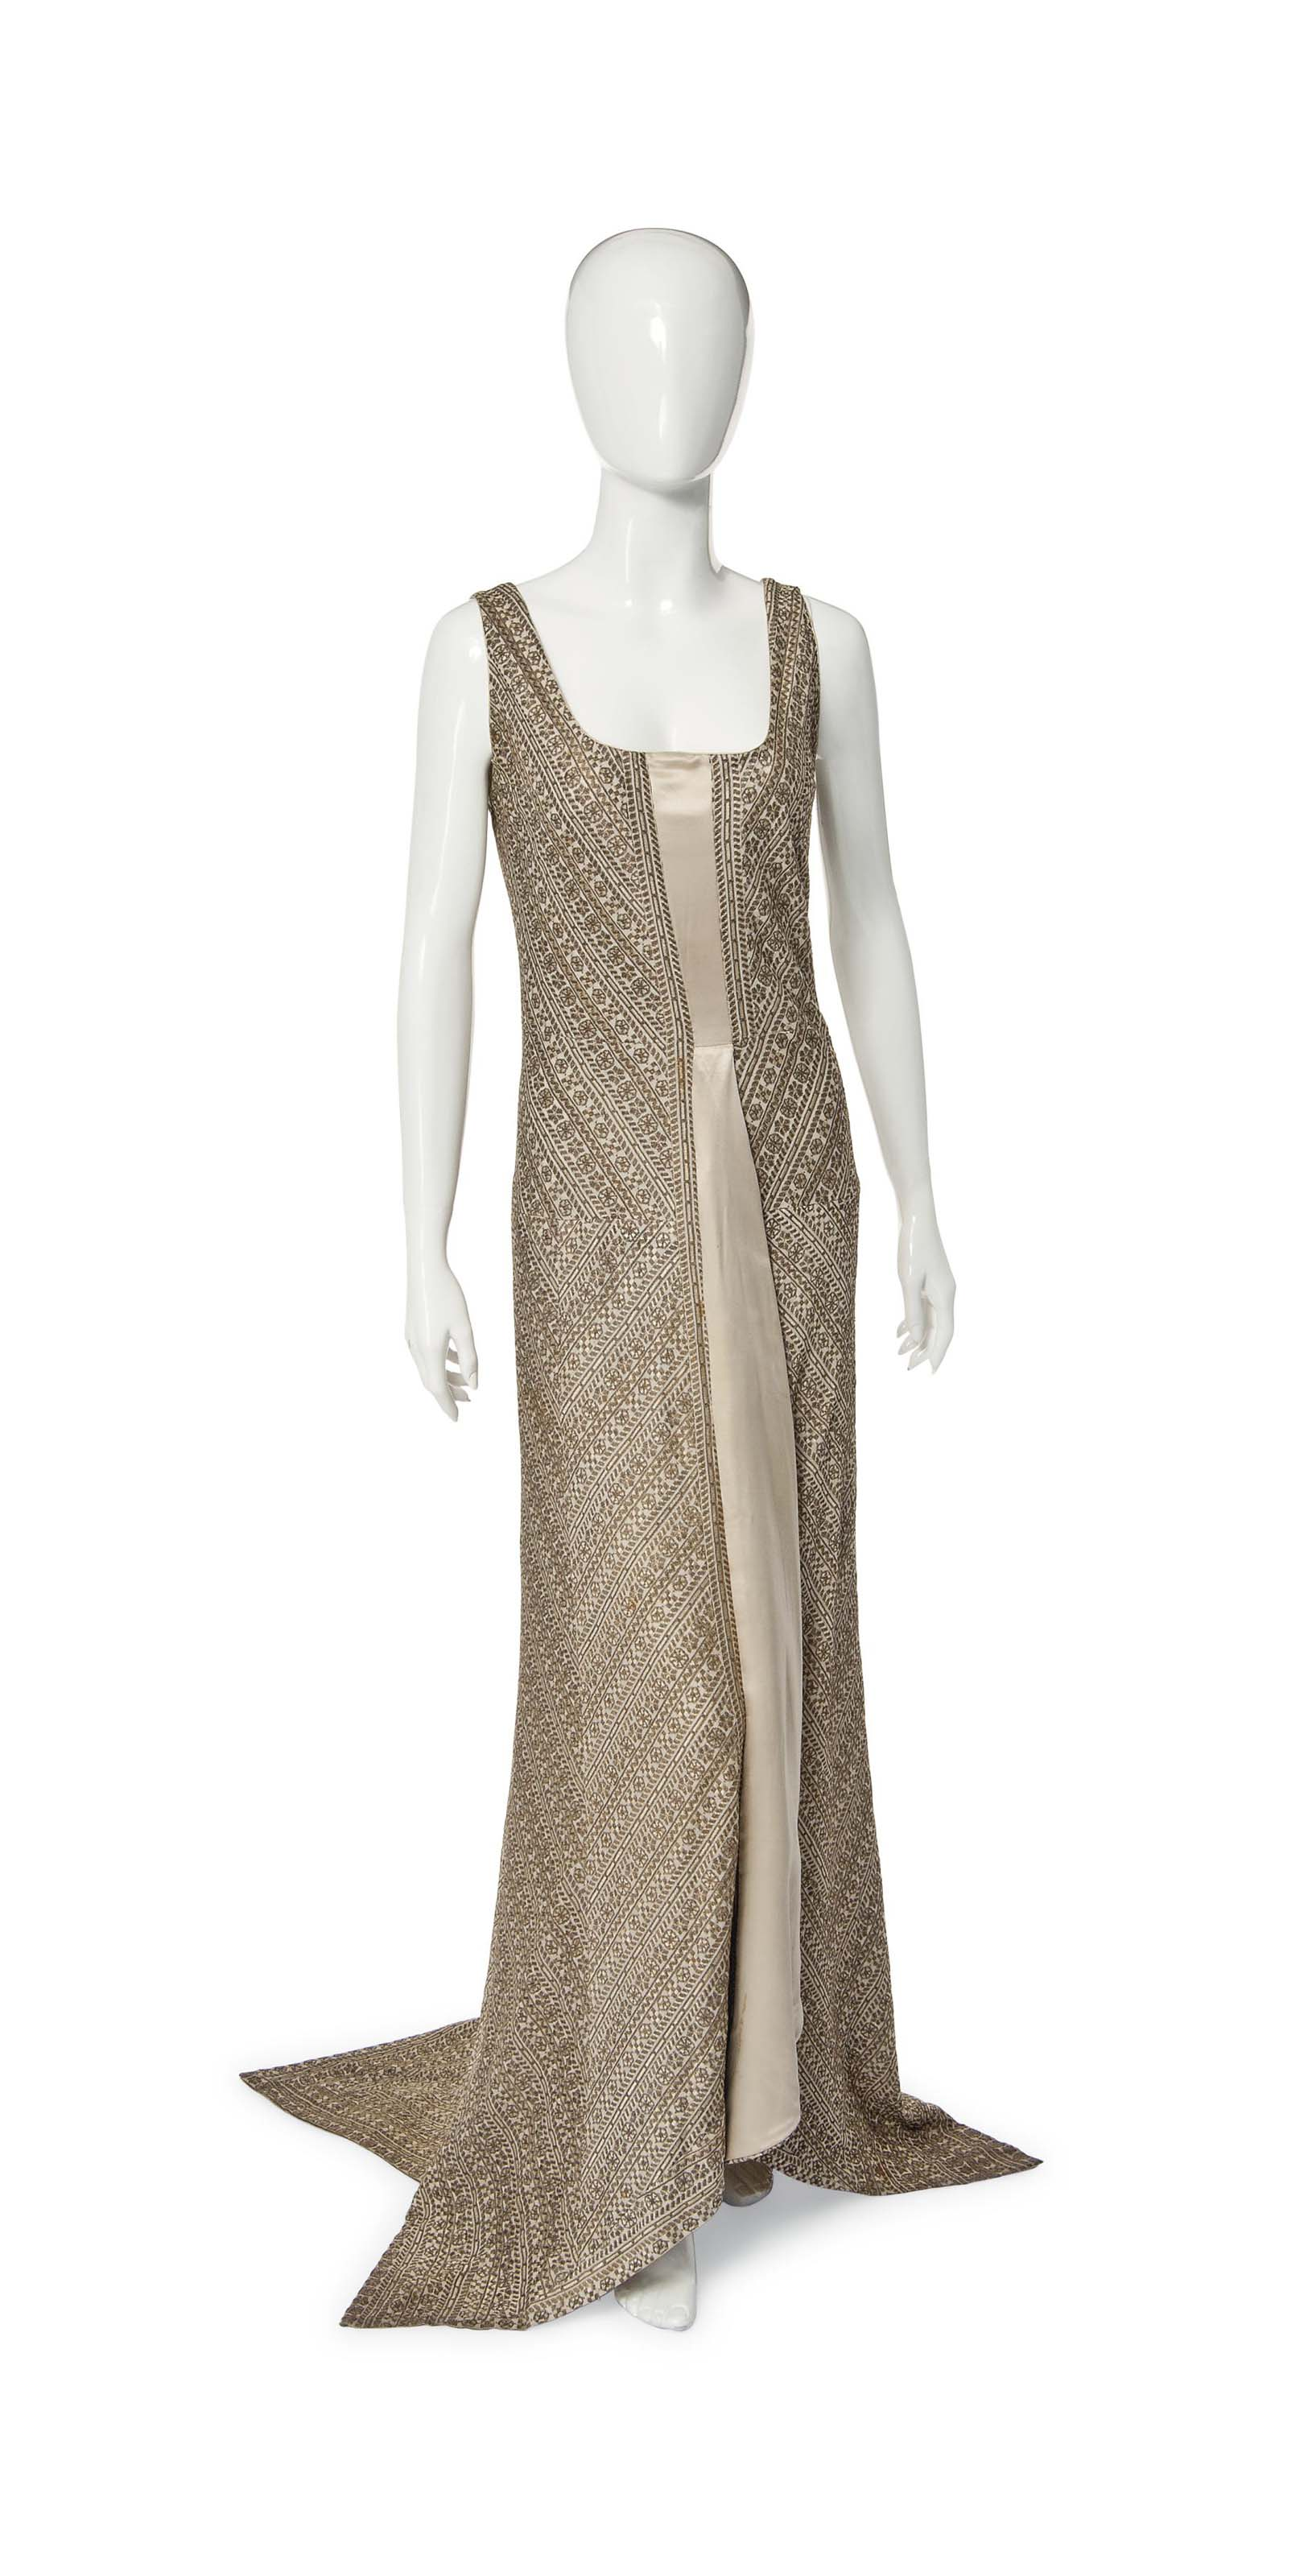 A PAUL POIRET EVENING GOWN OF GOLD AND CREAM